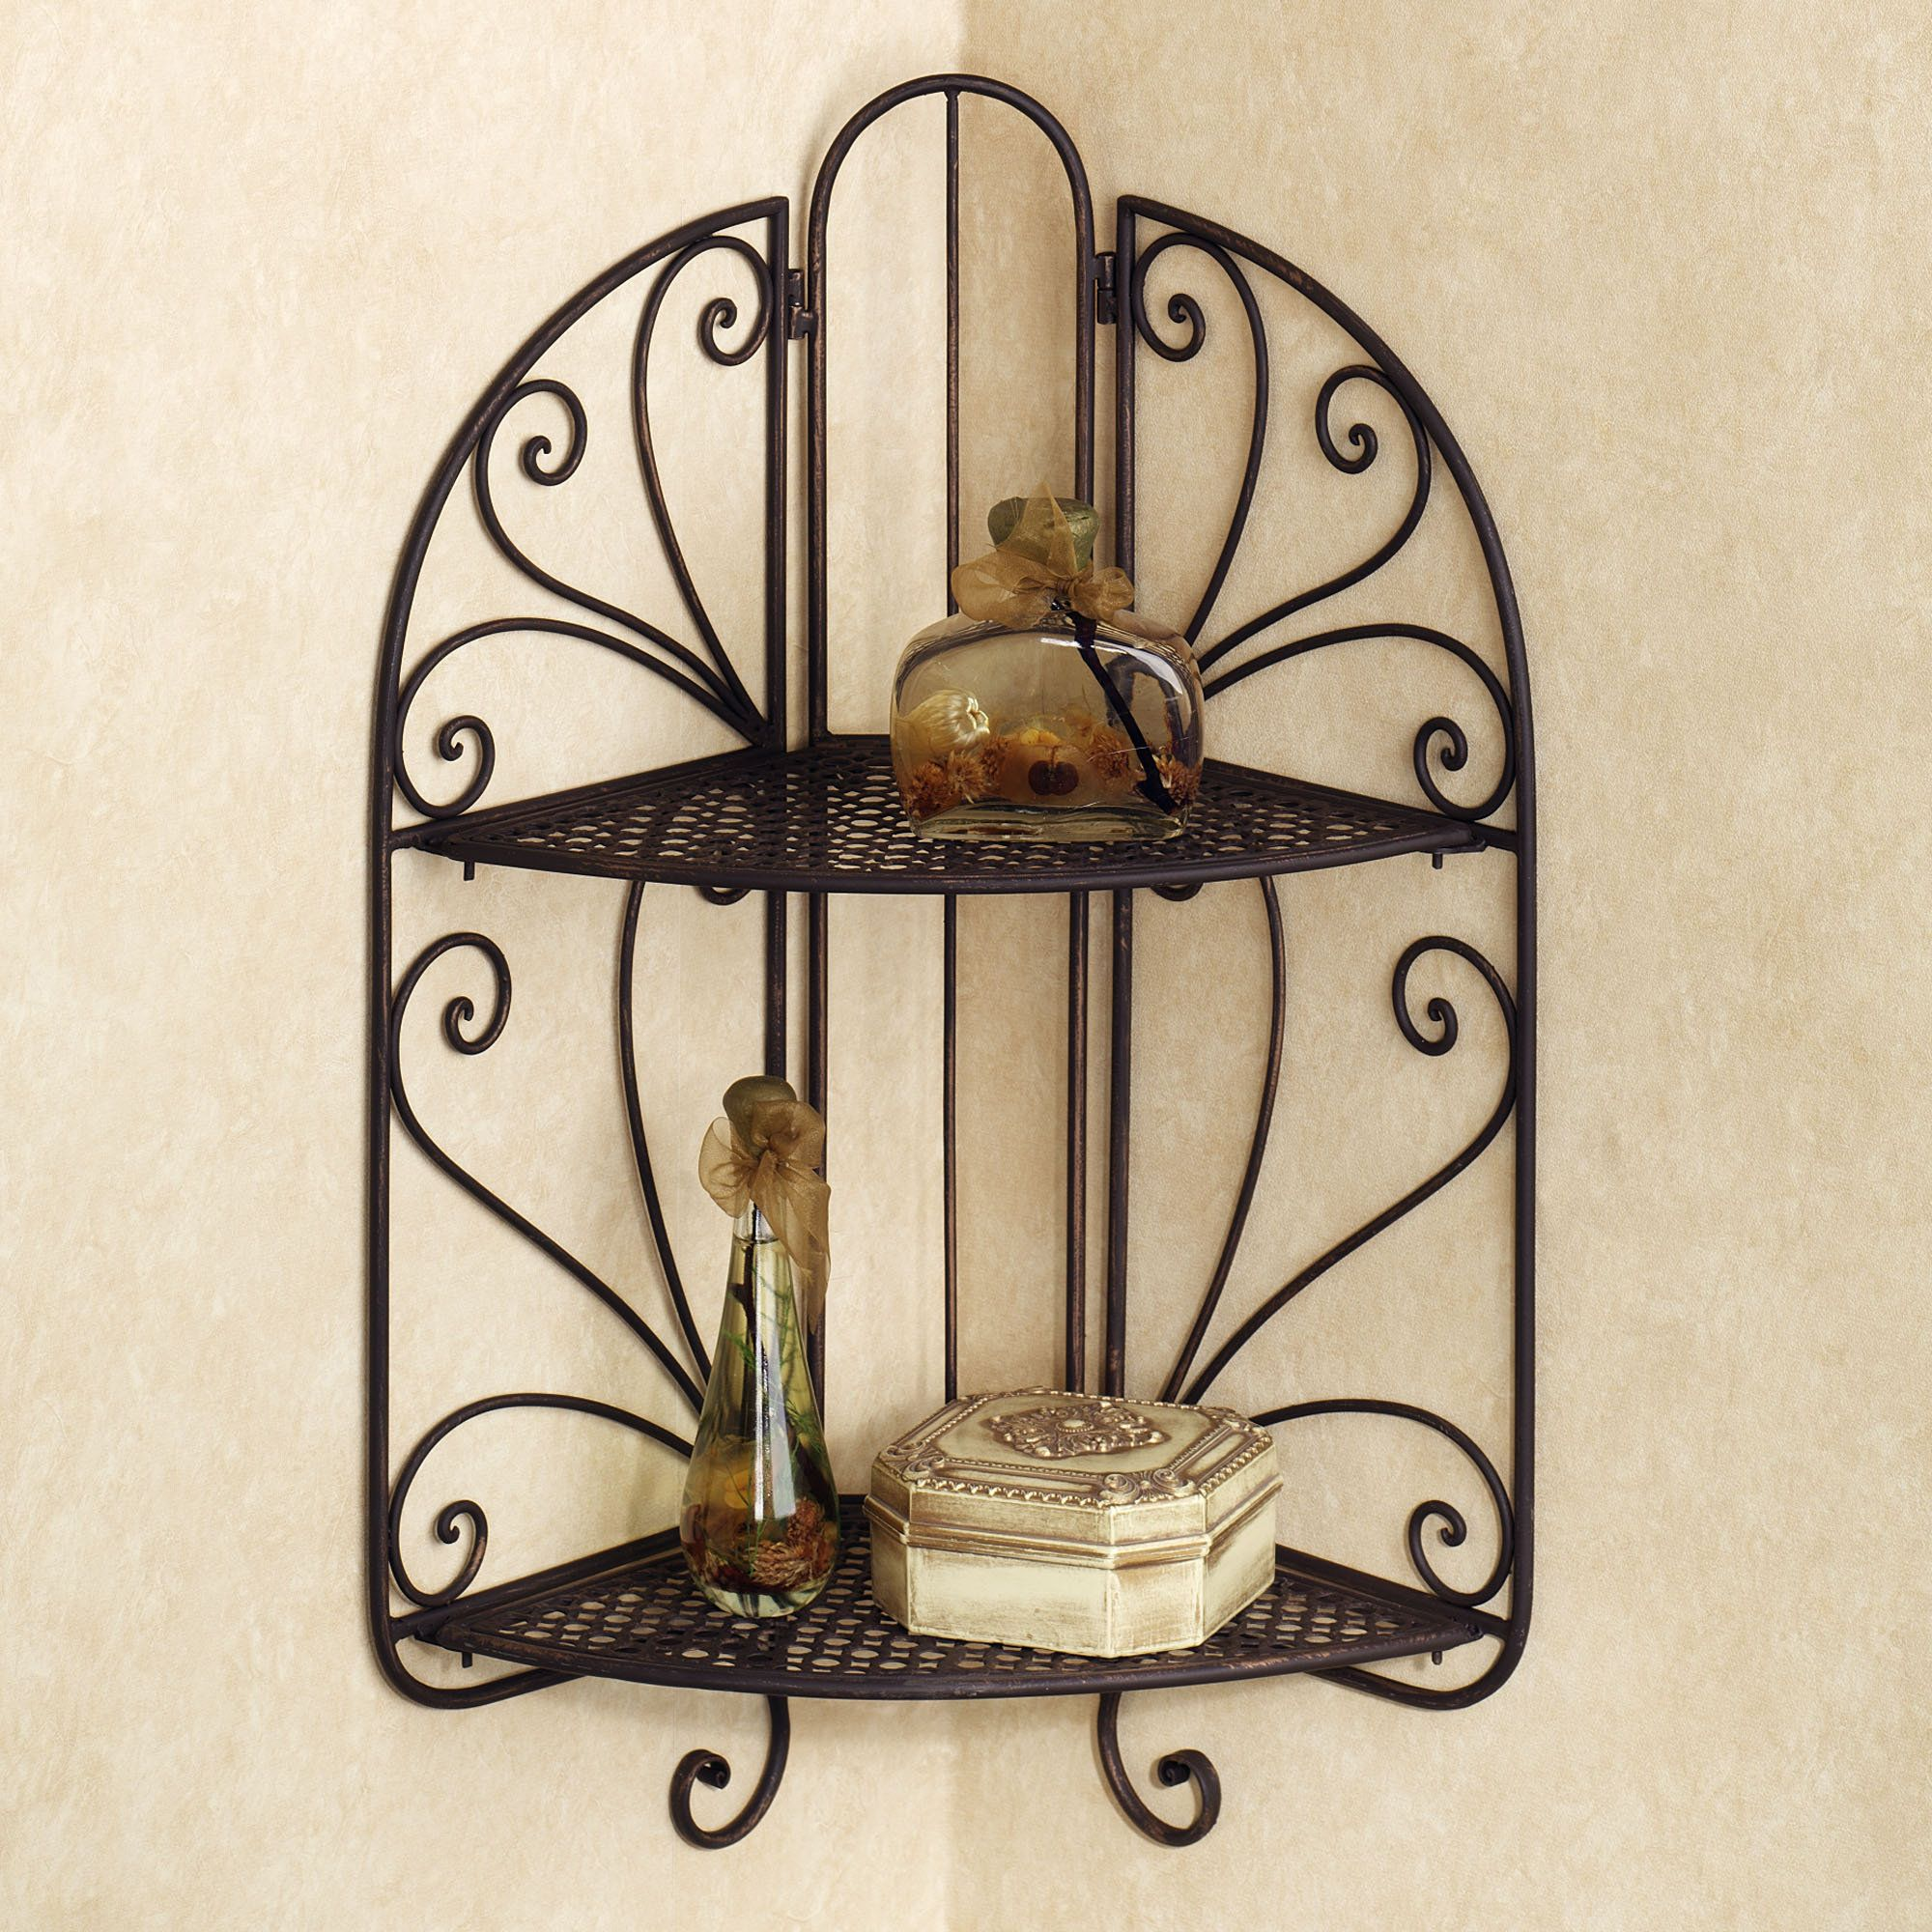 Popular Wrought Iron Sink Holder Iron Forged Furniture Designs For Bathroom